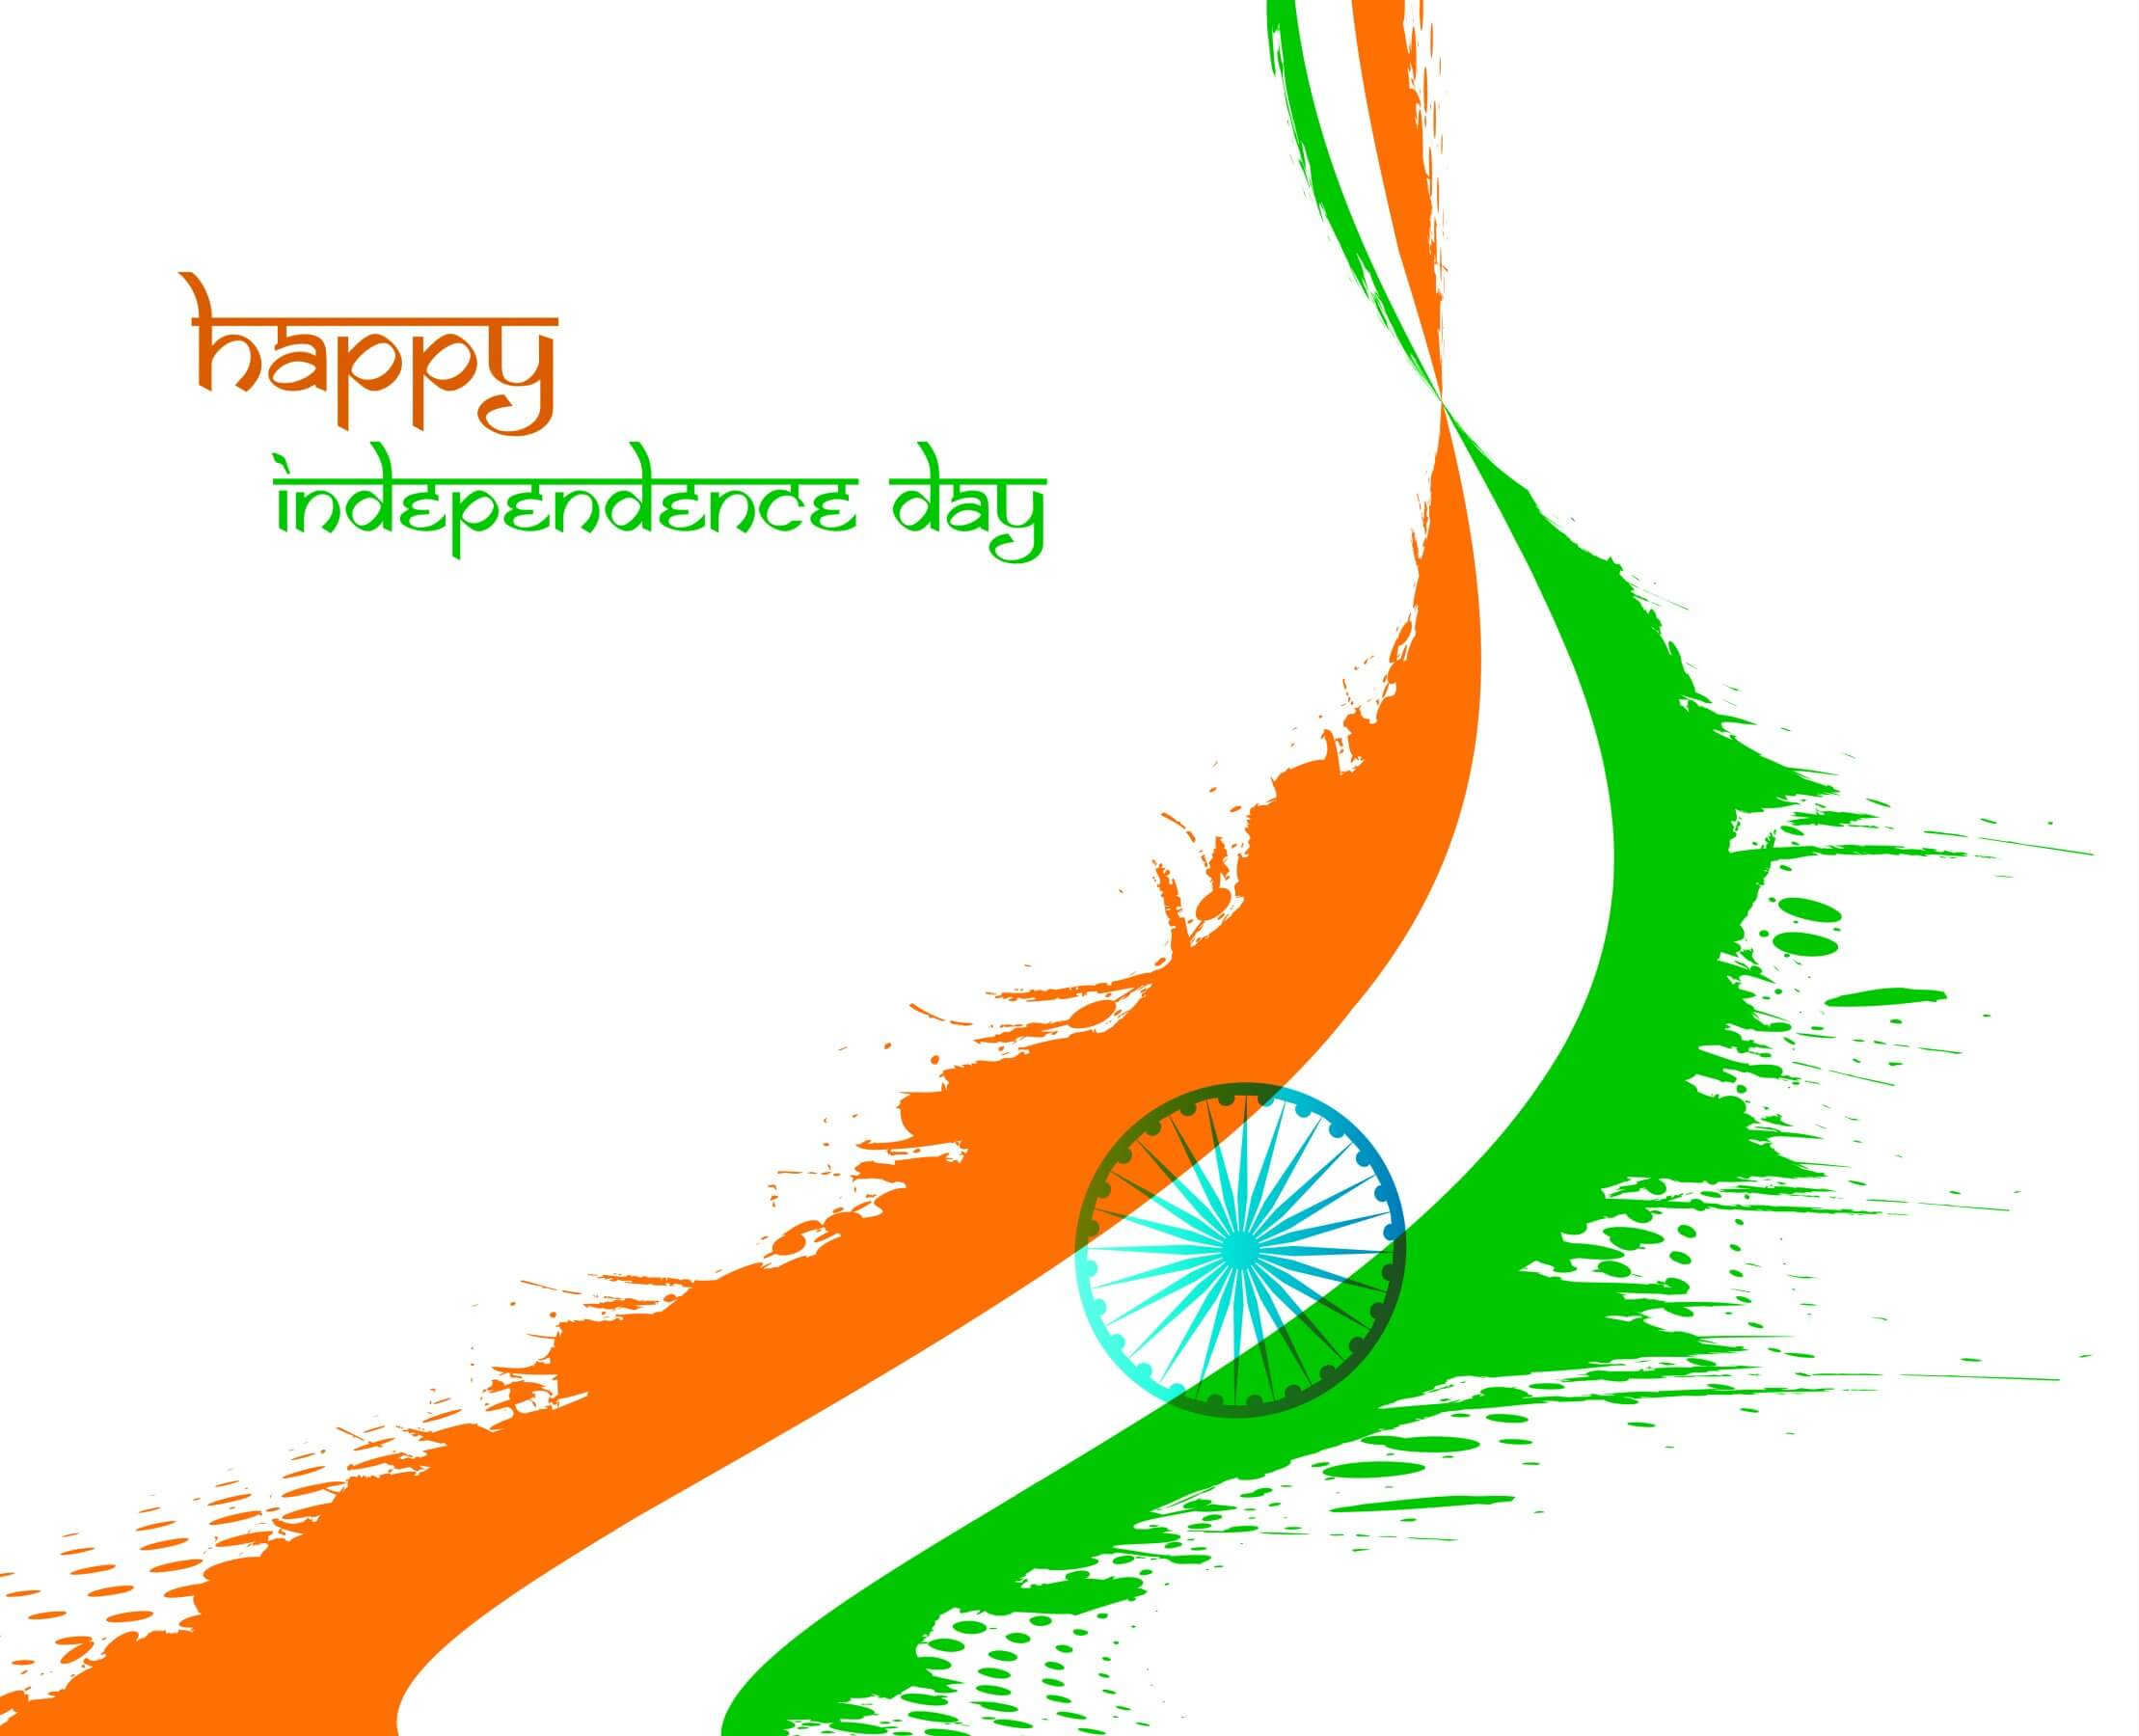 happy india independence day august 15th 1947 hd